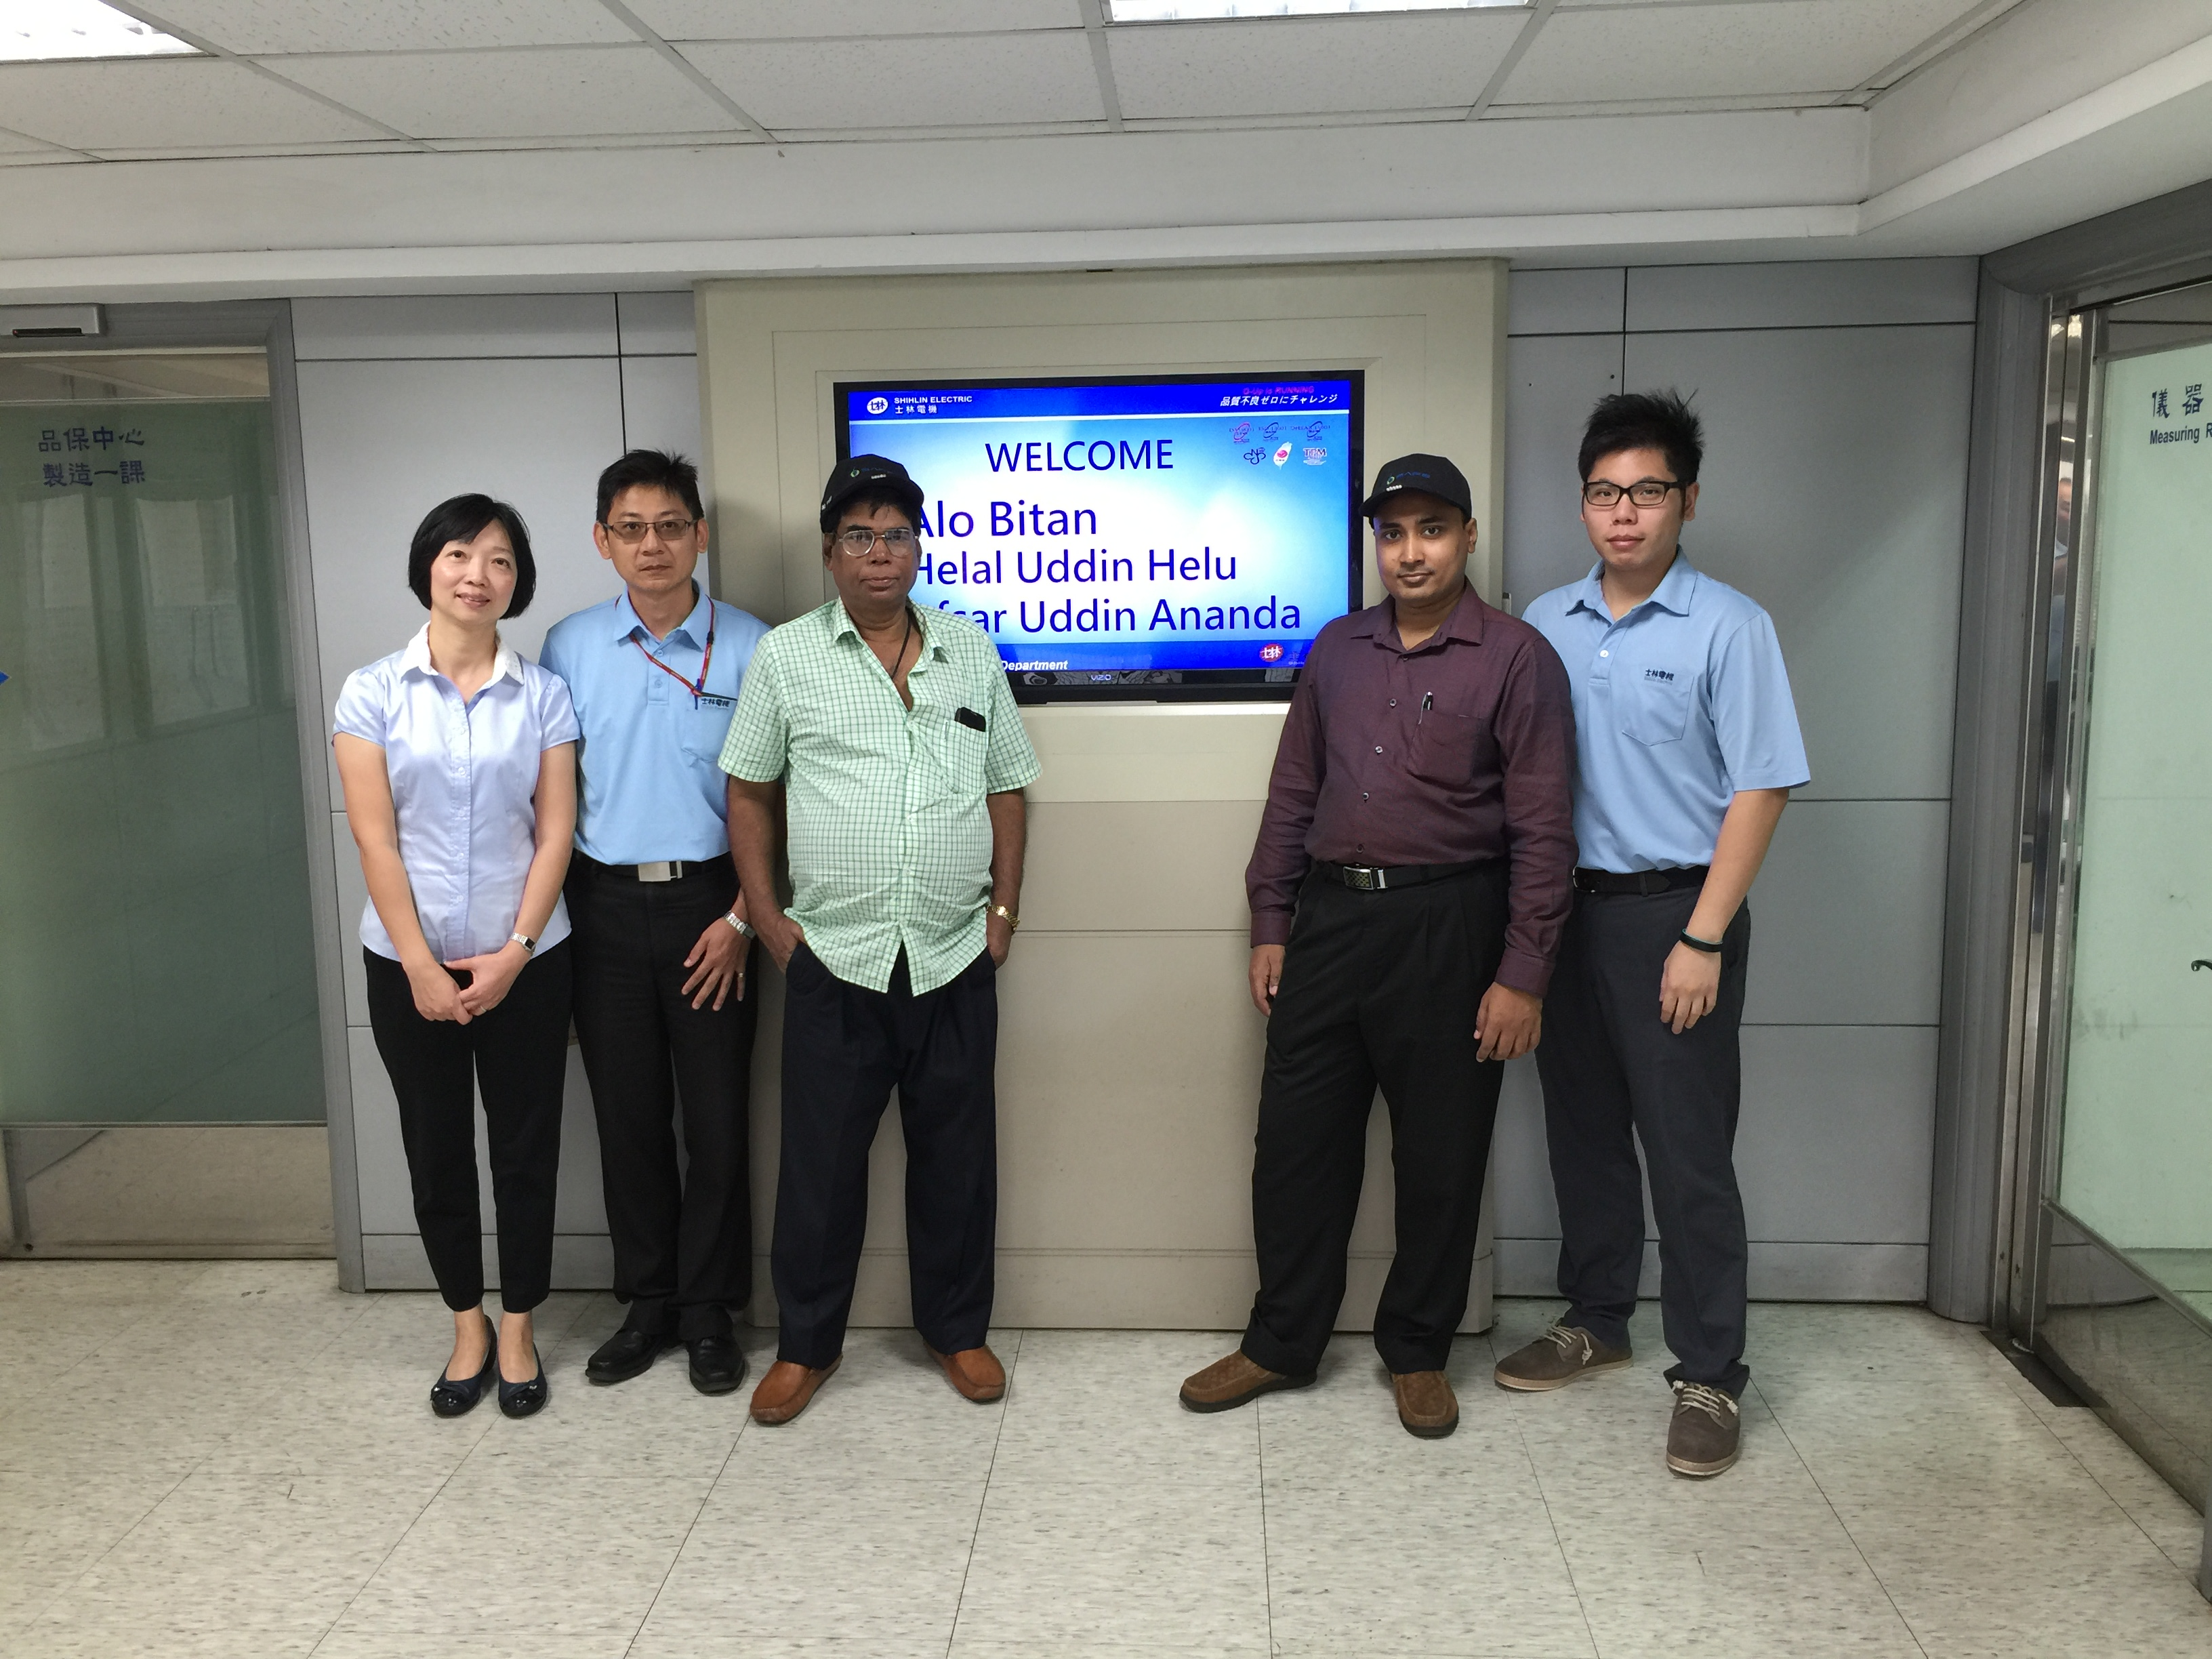 Bangladesh customers visit Shihlin Electric